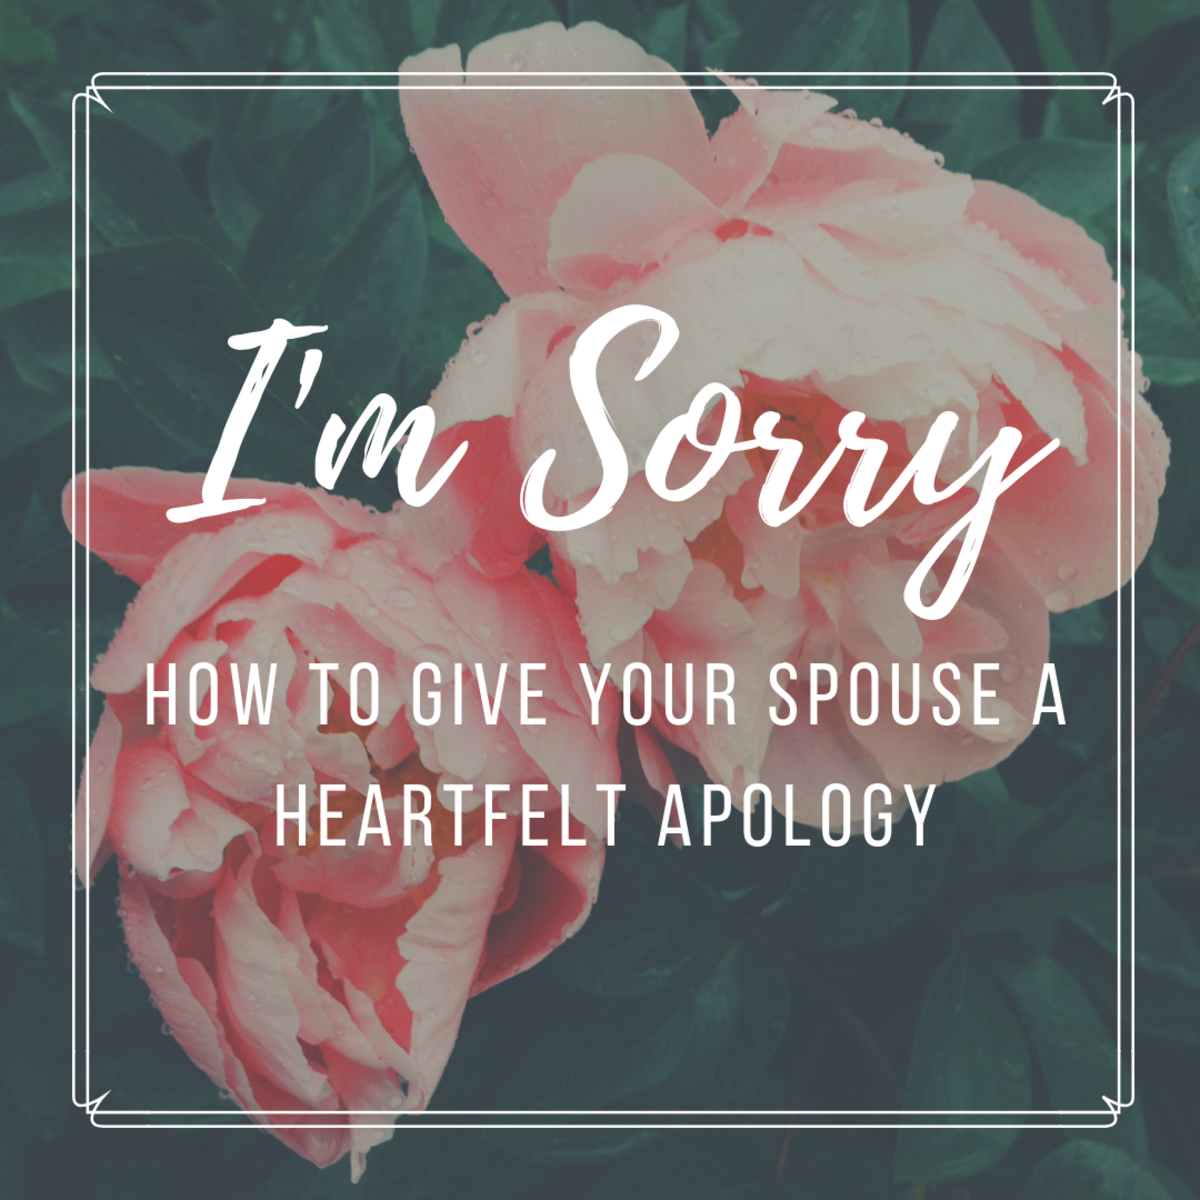 Being able to say sorry to someone you love may not always be easy, but it is important if you want to have a long, happy, and healthy relationship.